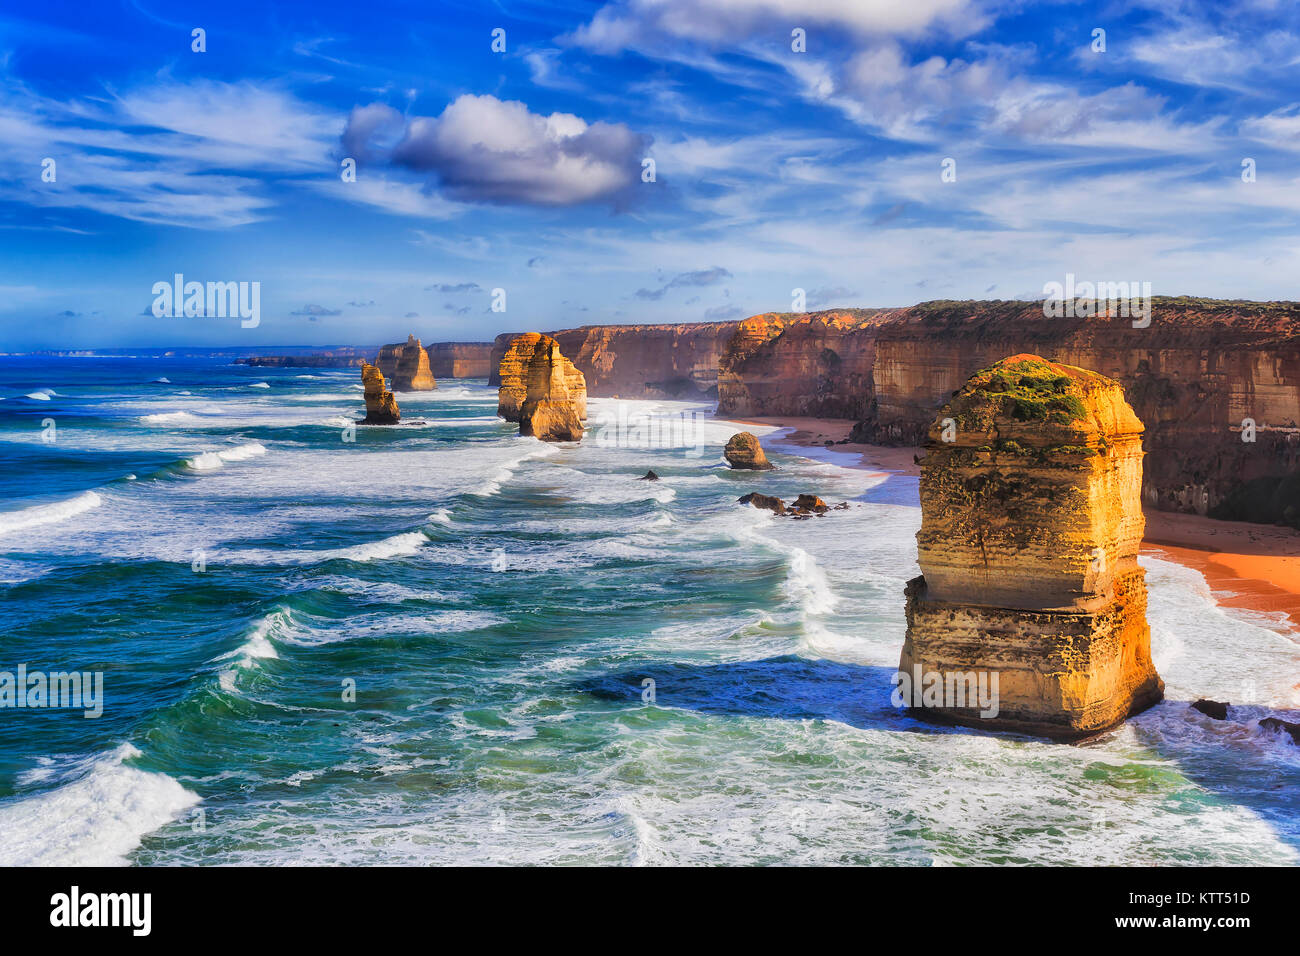 Disconnected eroded limestone rocks of twelve apostles rock formation in marina park on the Great Ocean road during - Stock Image